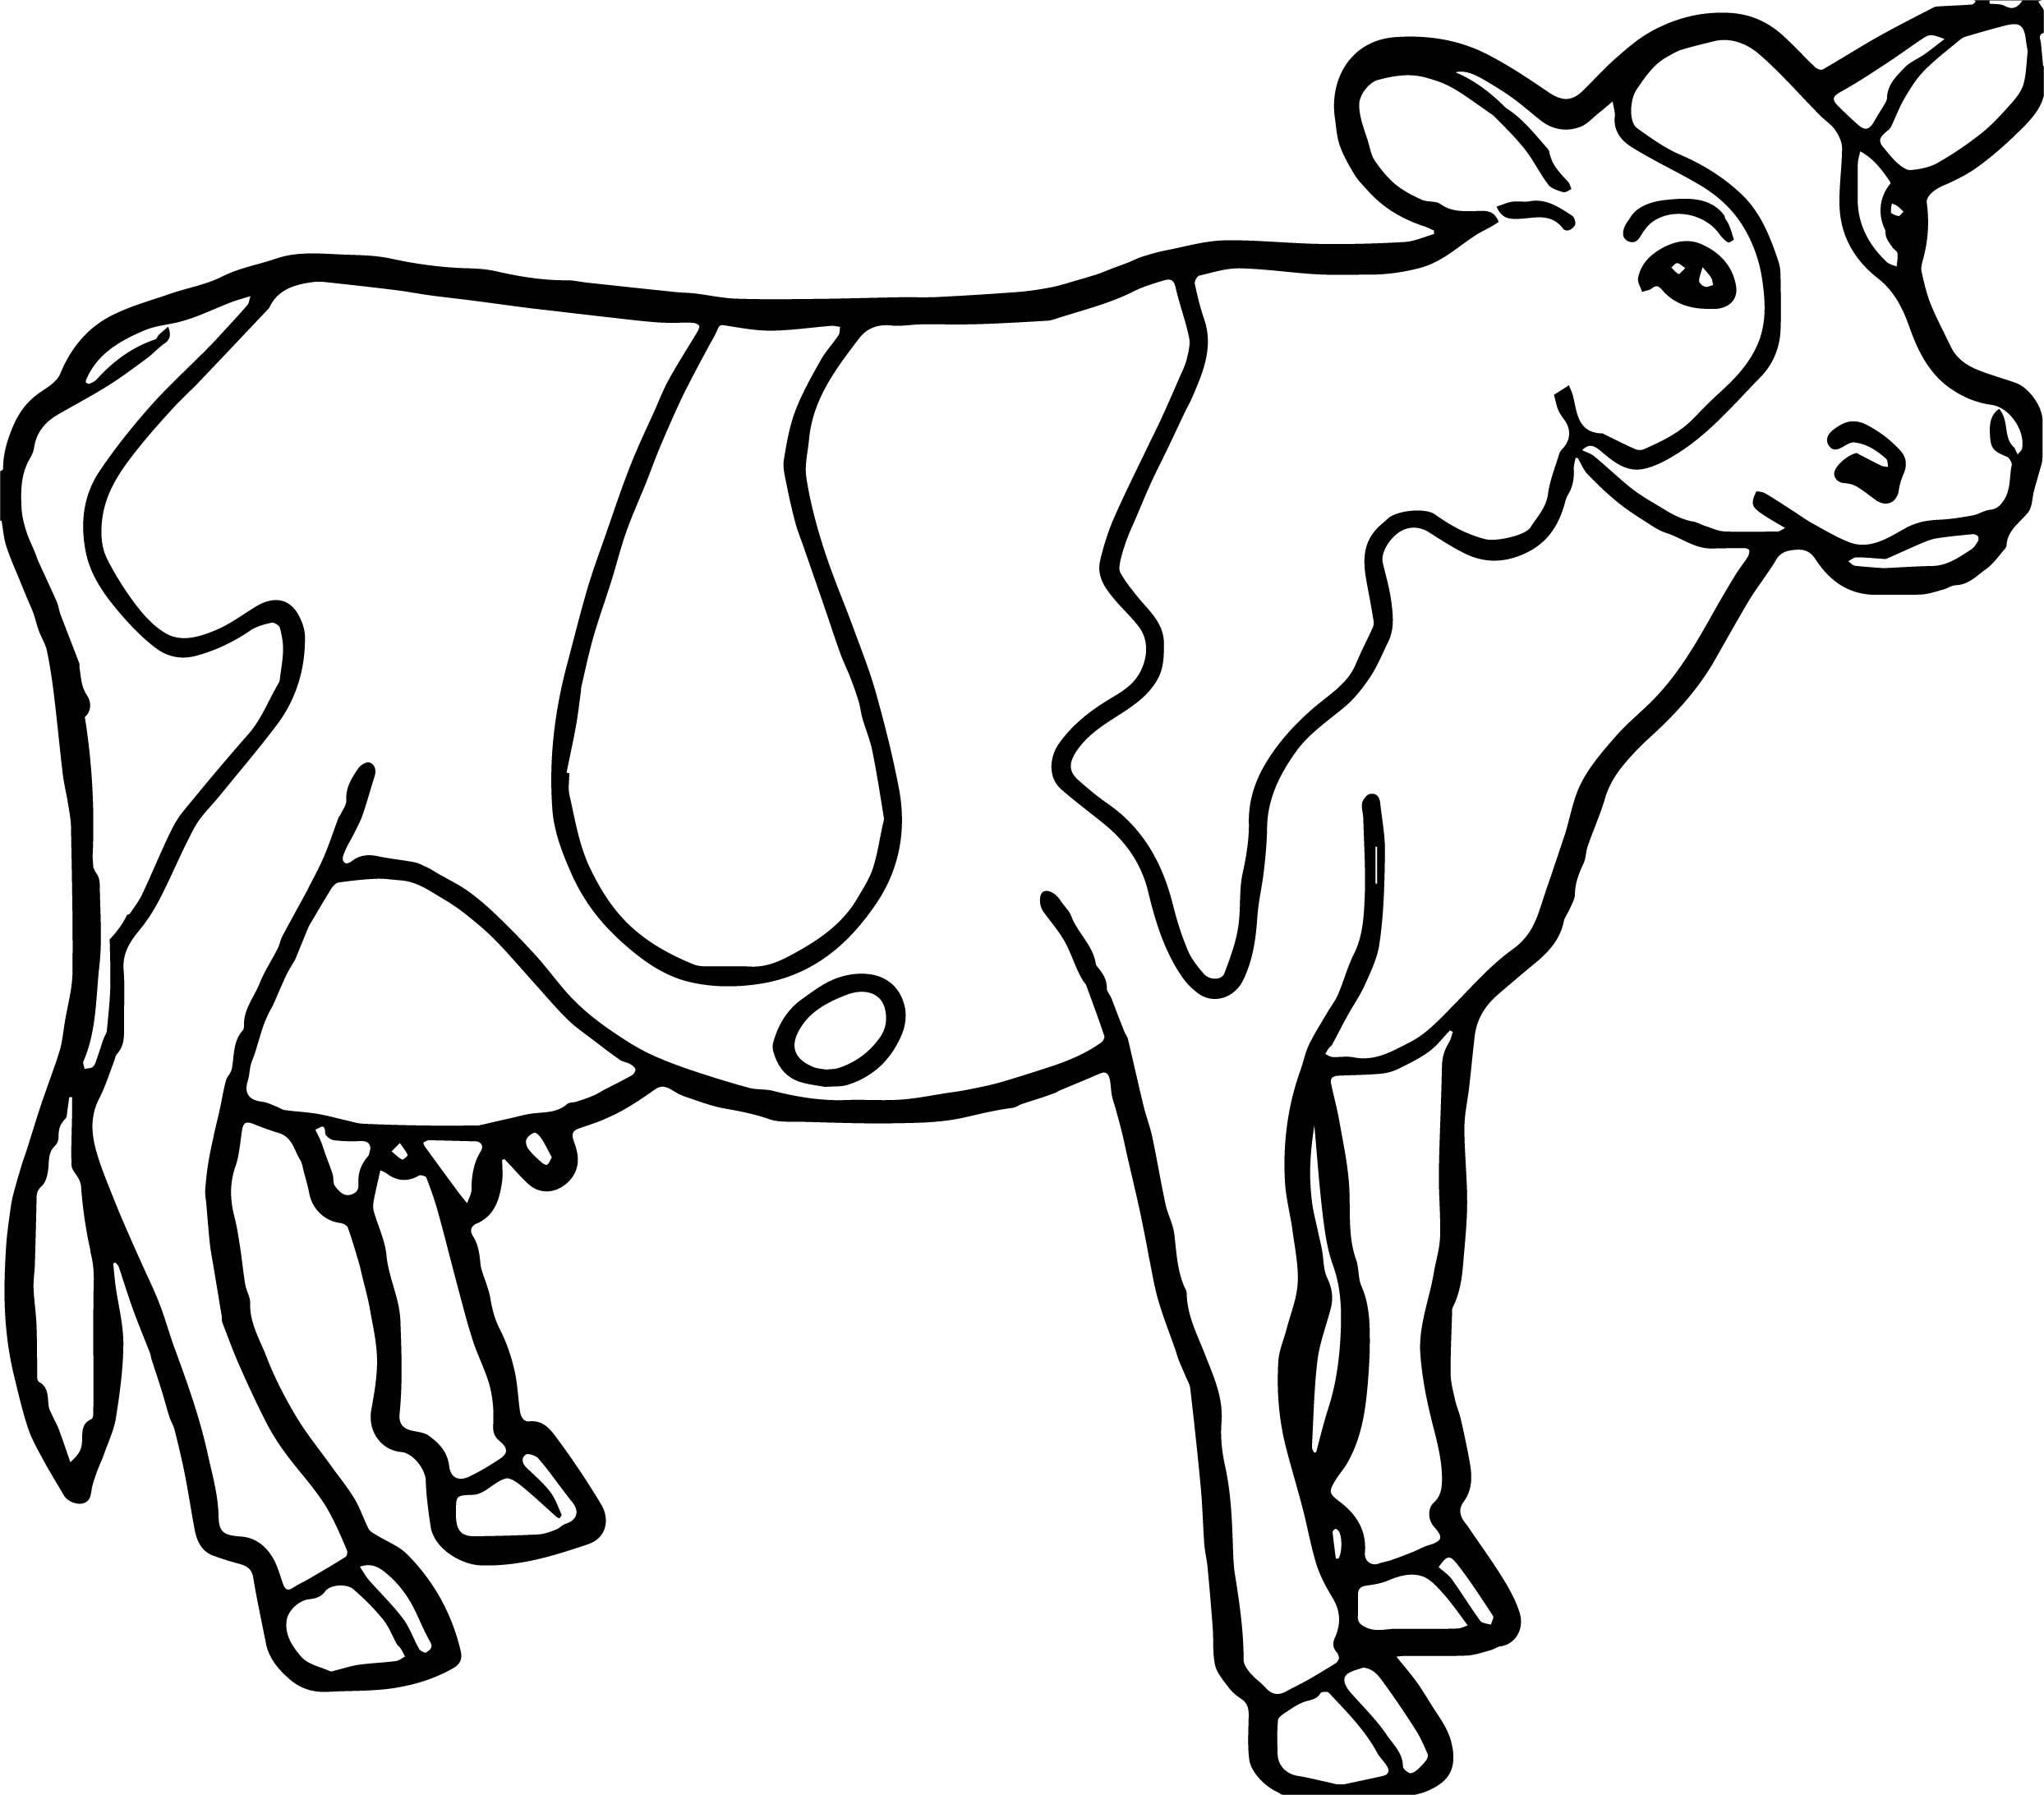 2488x2185 New Dairy Cow Coloring Pages Gallery Free Coloring Pages